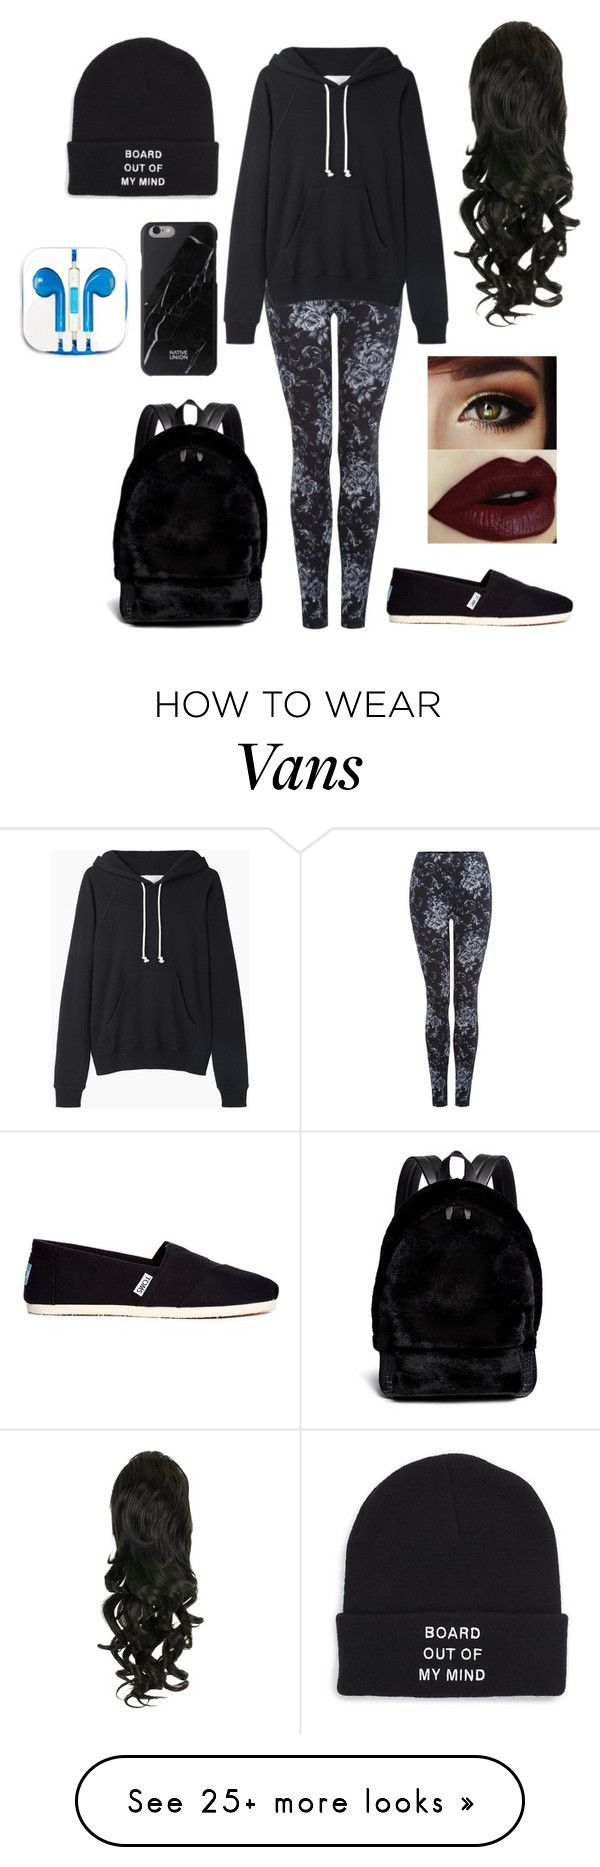 """Untitled #615"" by cutiepie92343 on Polyvore featuring Dex, La Garçonne Moderne, TOMS, Vans, Alexander Wang, PhunkeeTree and Native Union"